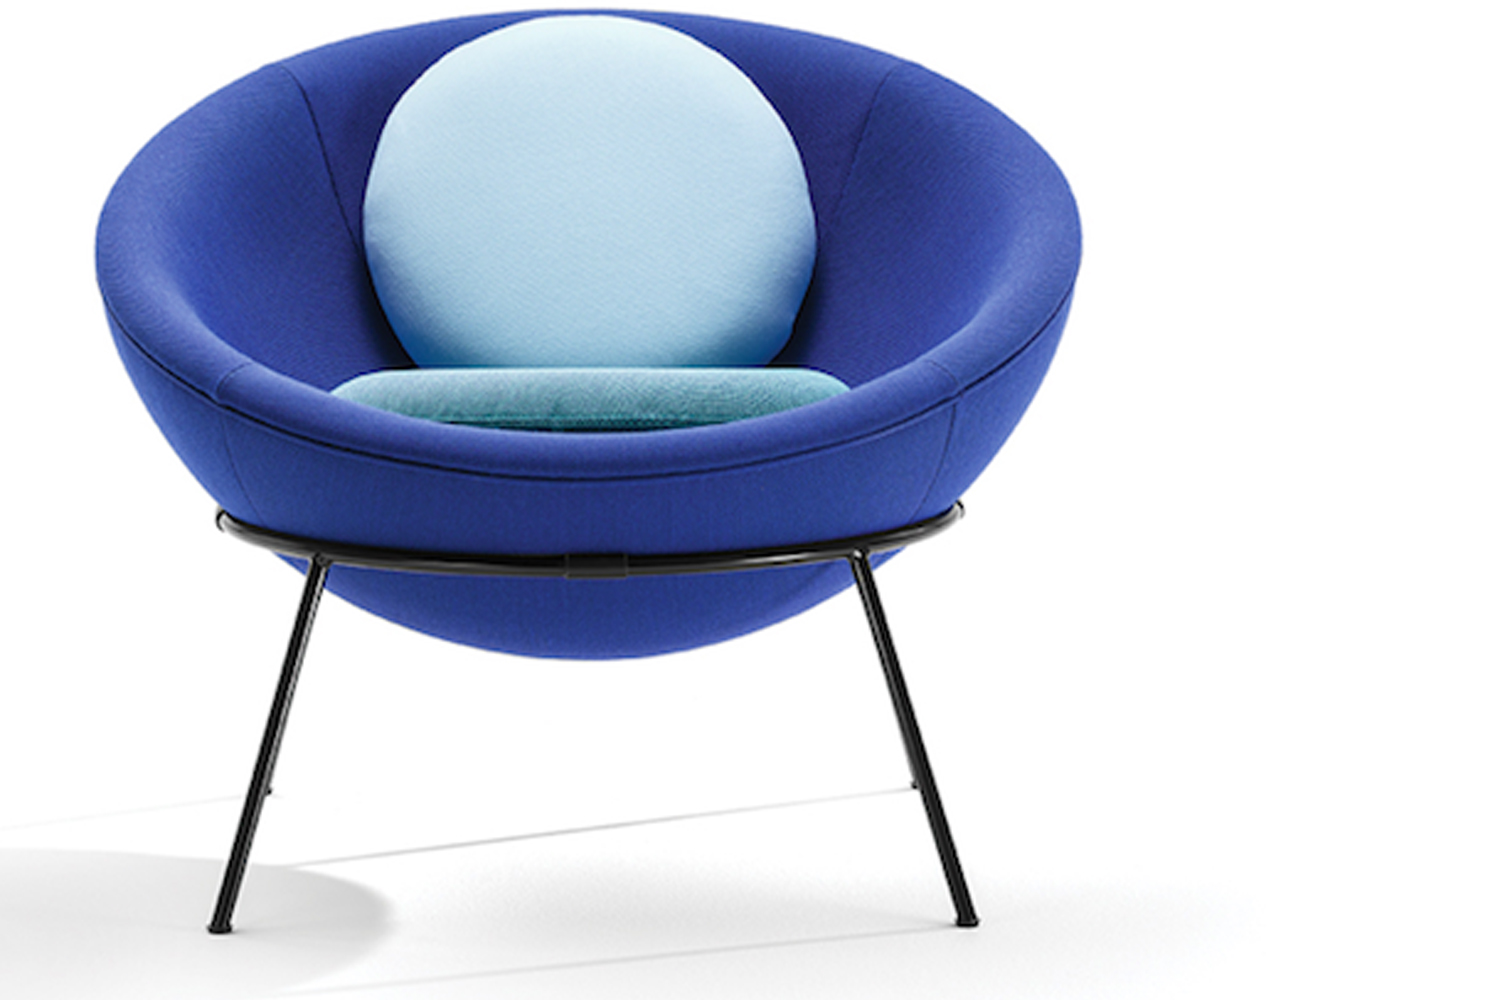 Arper announced three new shades of the Bowl chair.